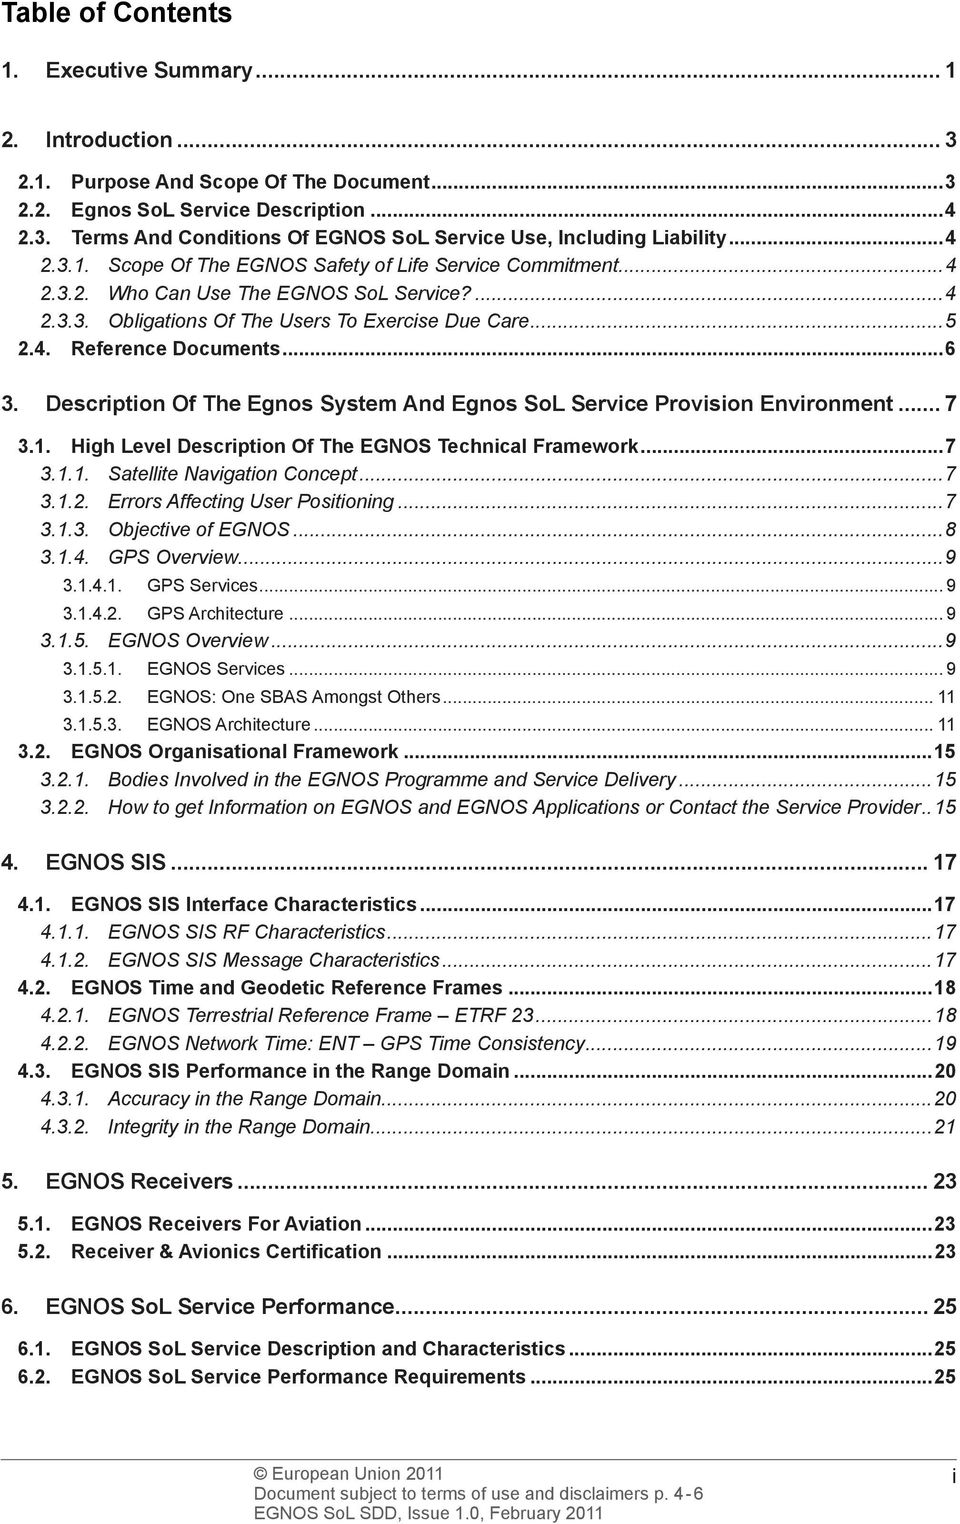 Description Of The Egnos System And Egnos SoL Service Provision Environment... 7 3.1. High Level Description Of The EGNOS Technical Framework...7 3.1.1. Satellite Navigation Concept...7 3.1.2.